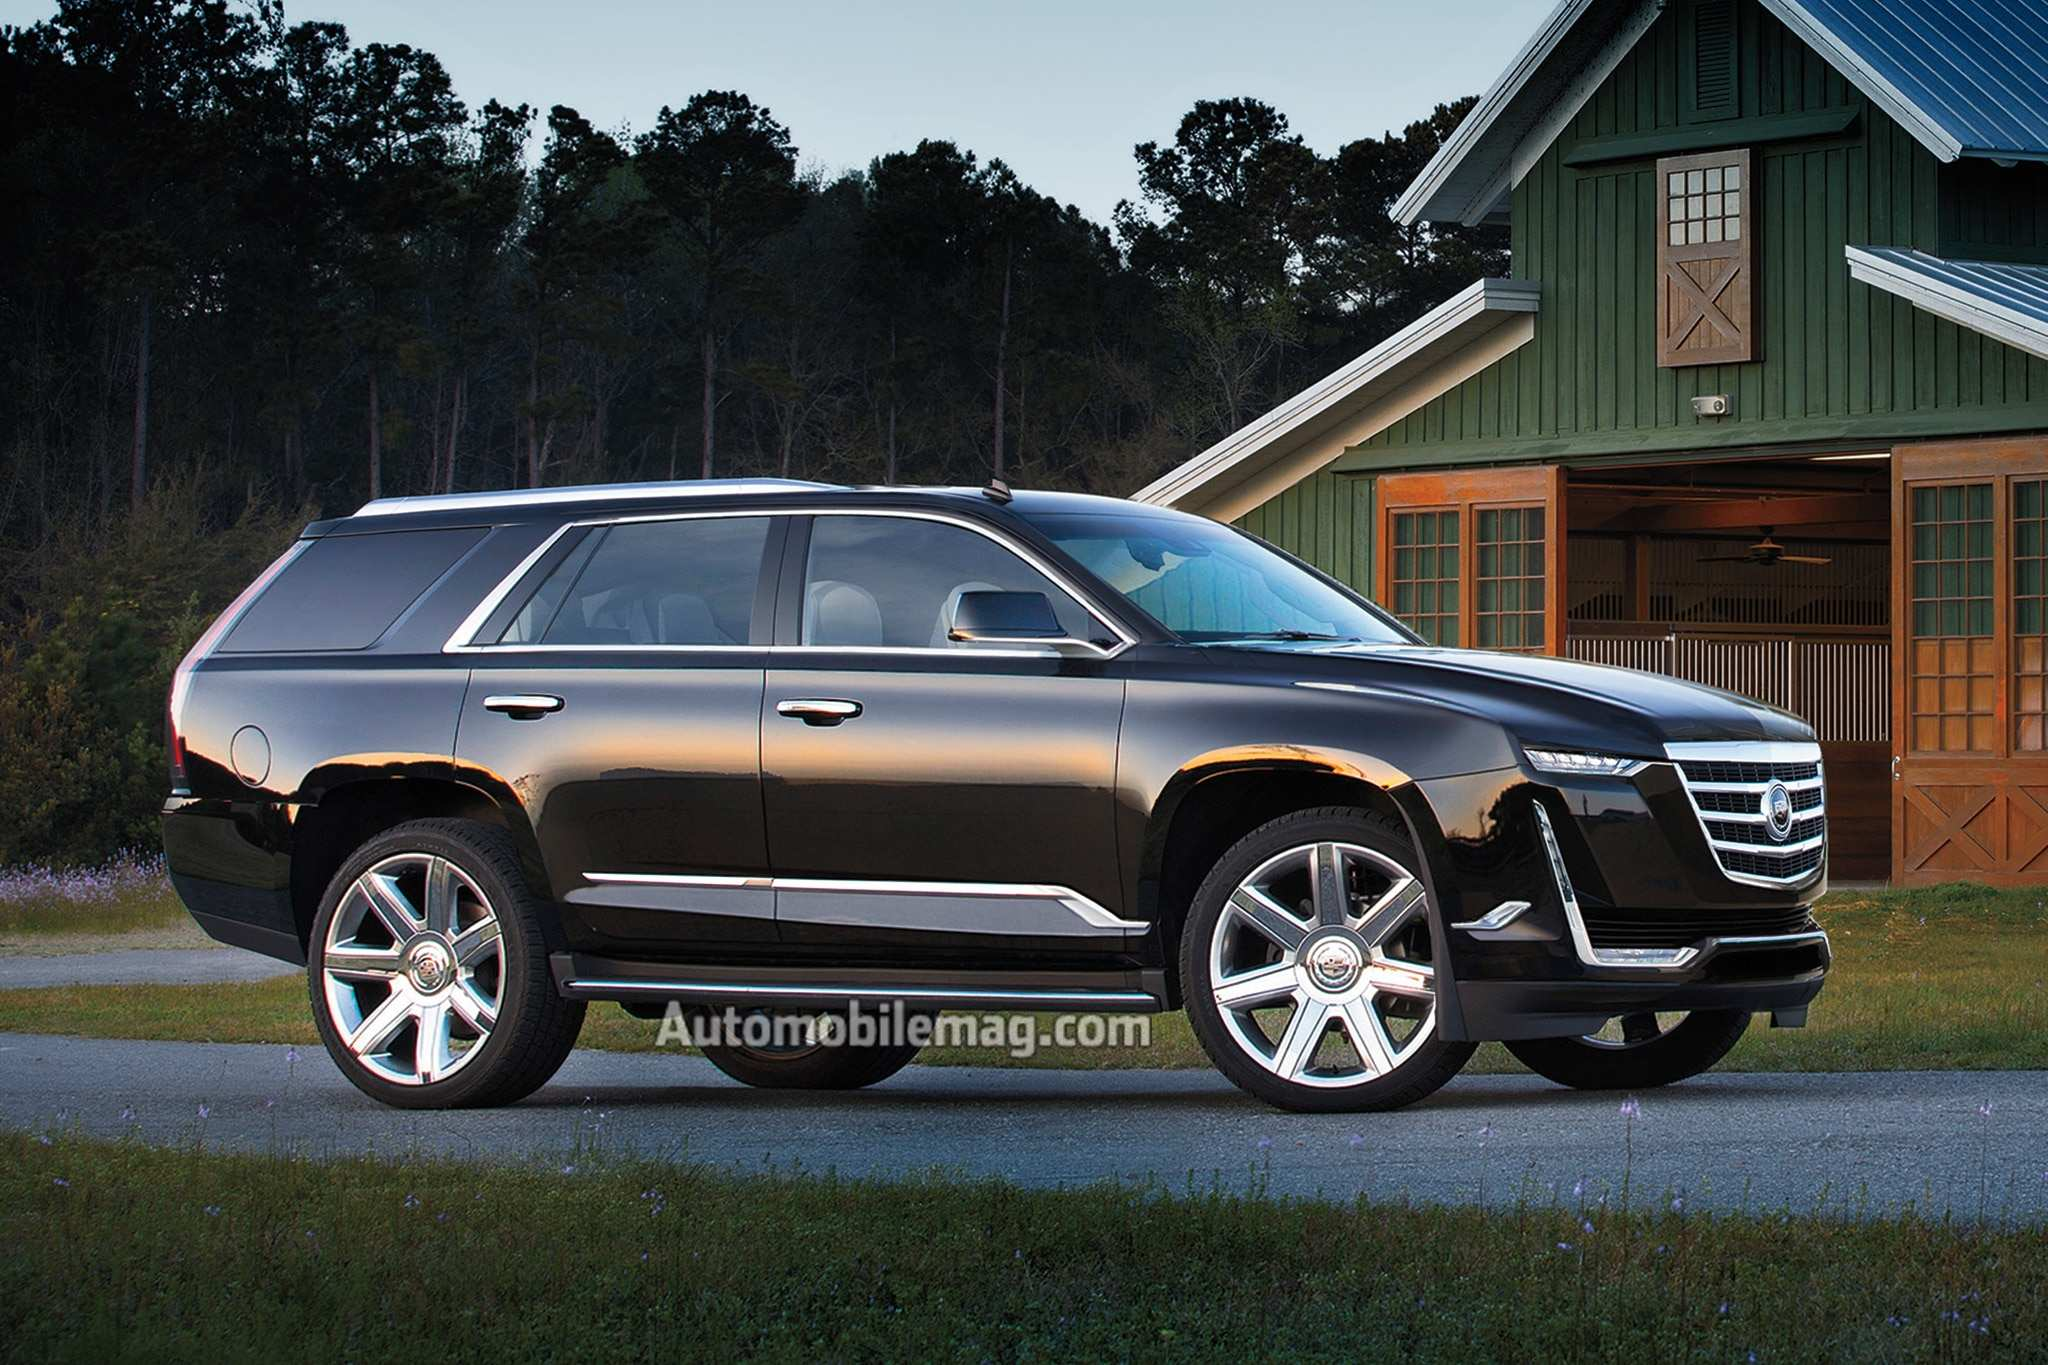 19 Gallery of Cadillac Hybrid Suv 2020 Exterior and Interior by Cadillac Hybrid Suv 2020